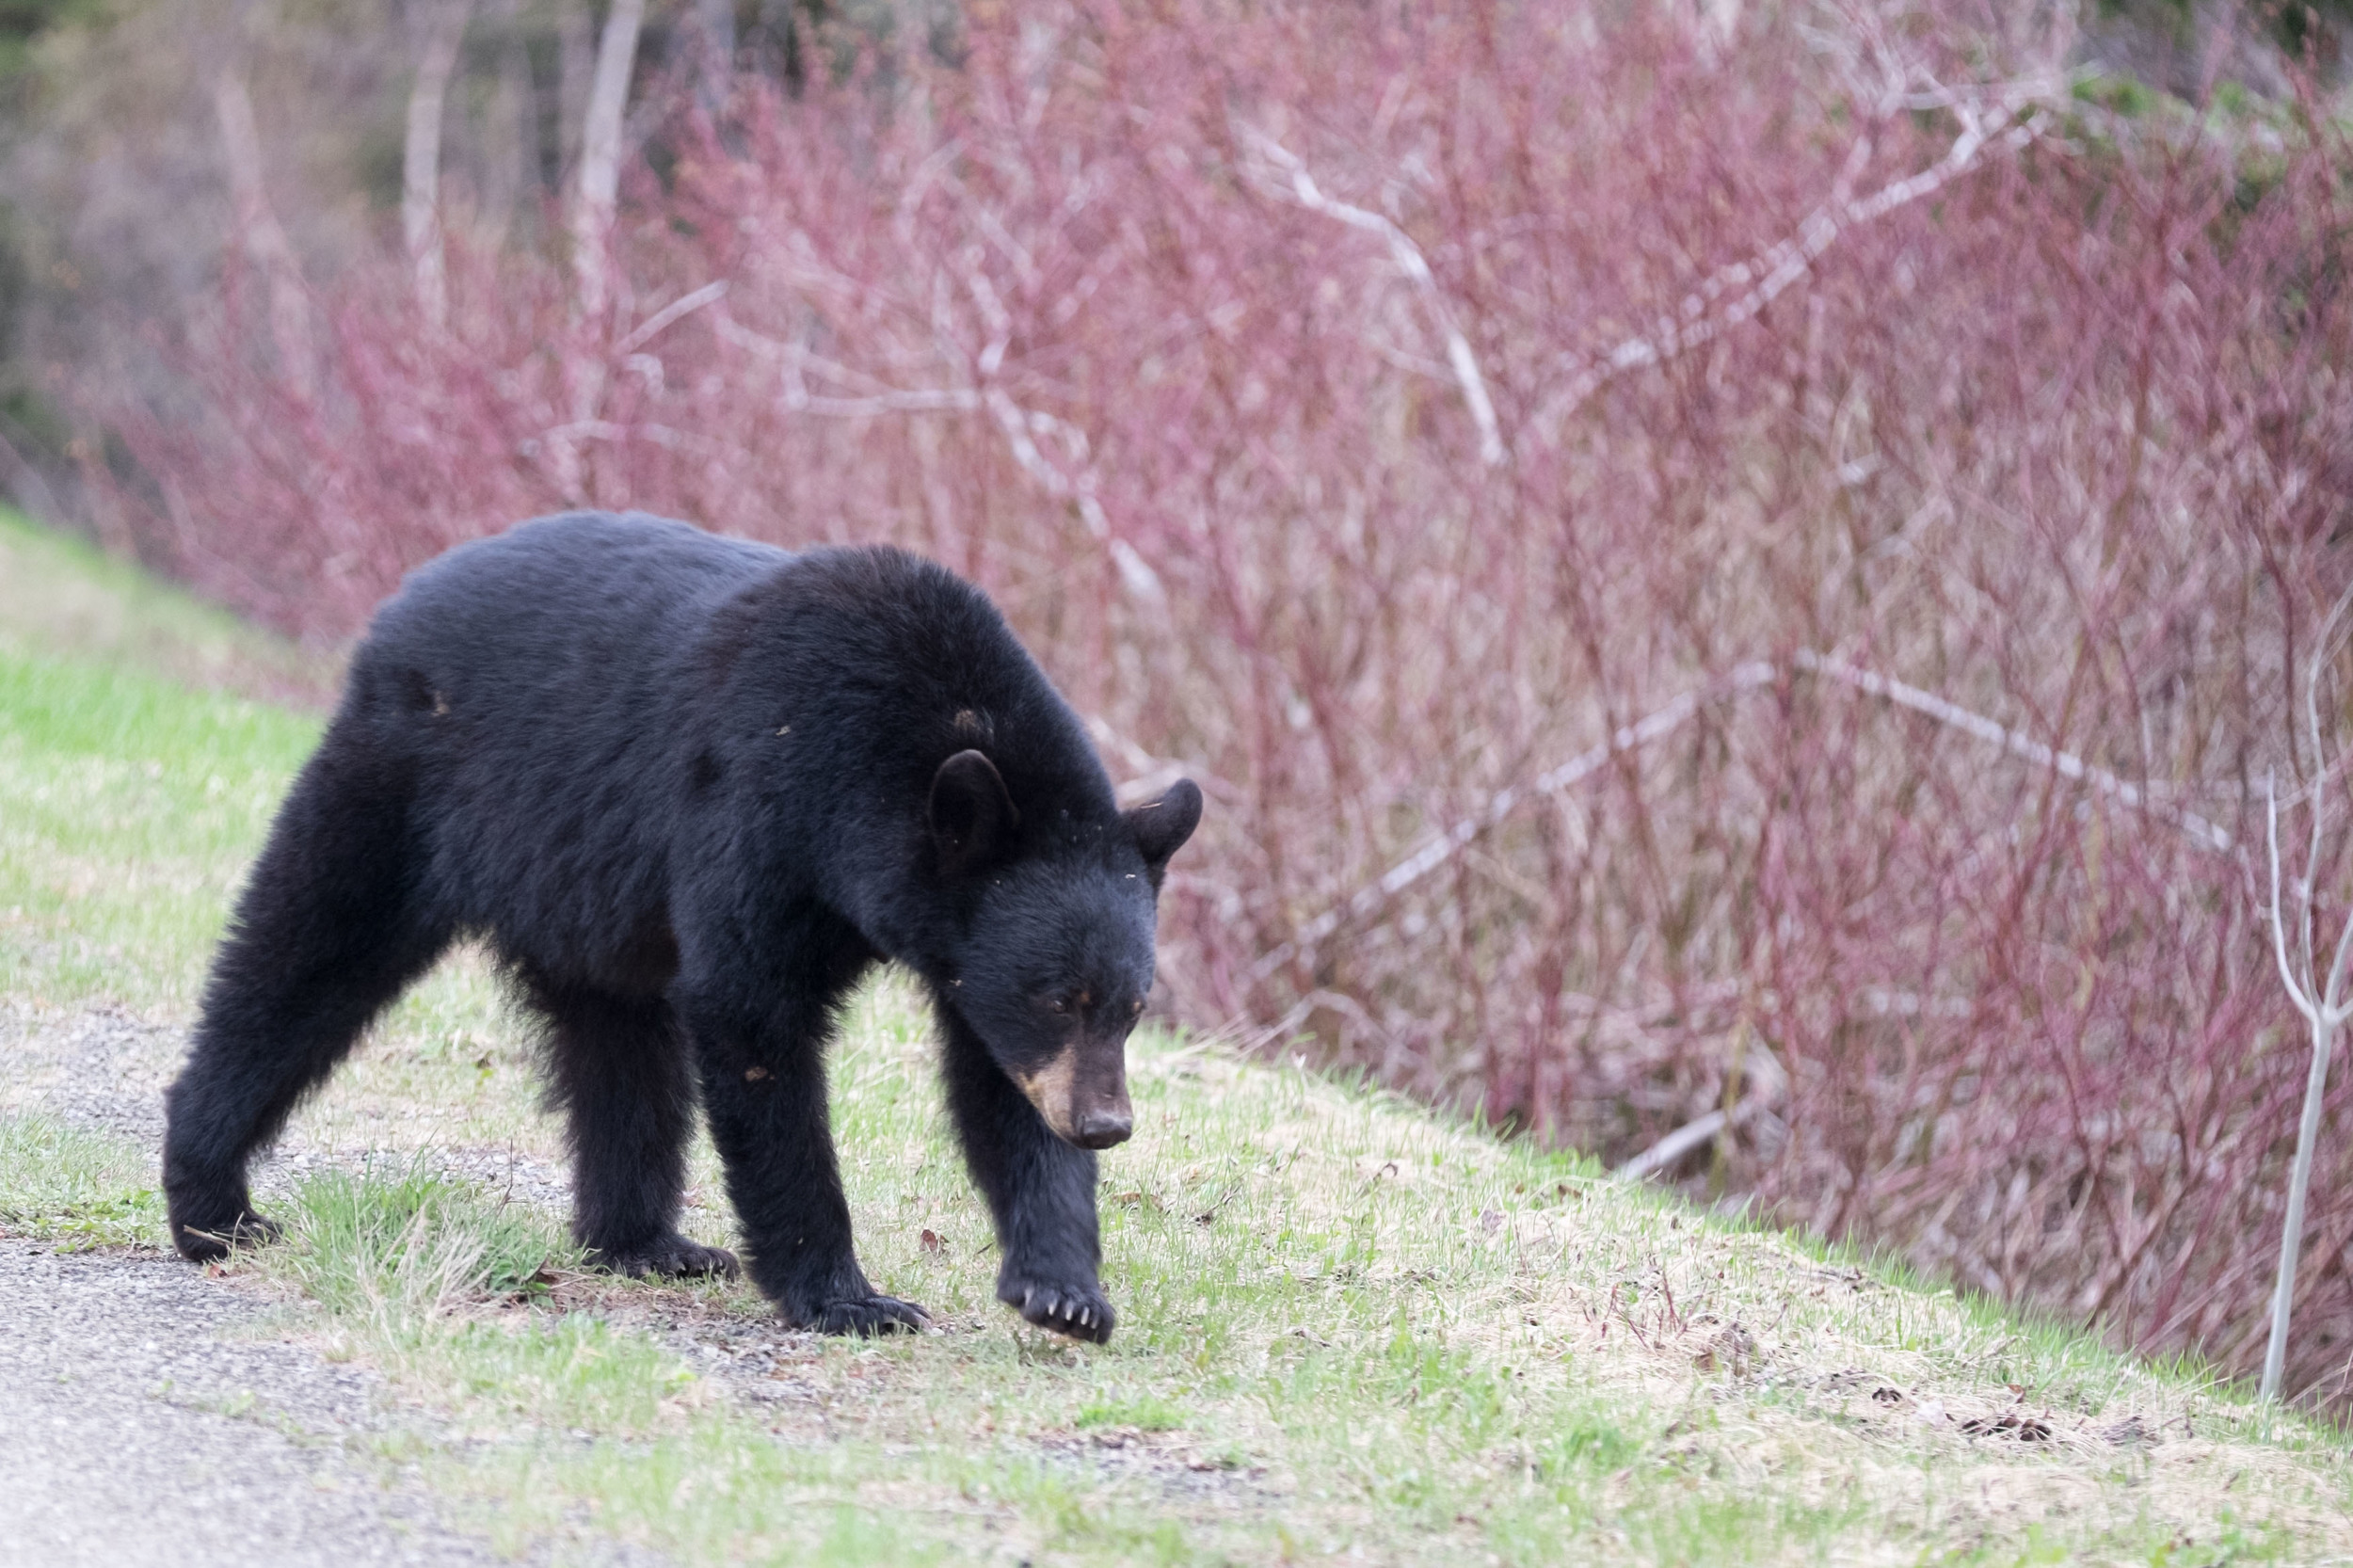 Mother Black Bear after a long winter, Forillon National Park